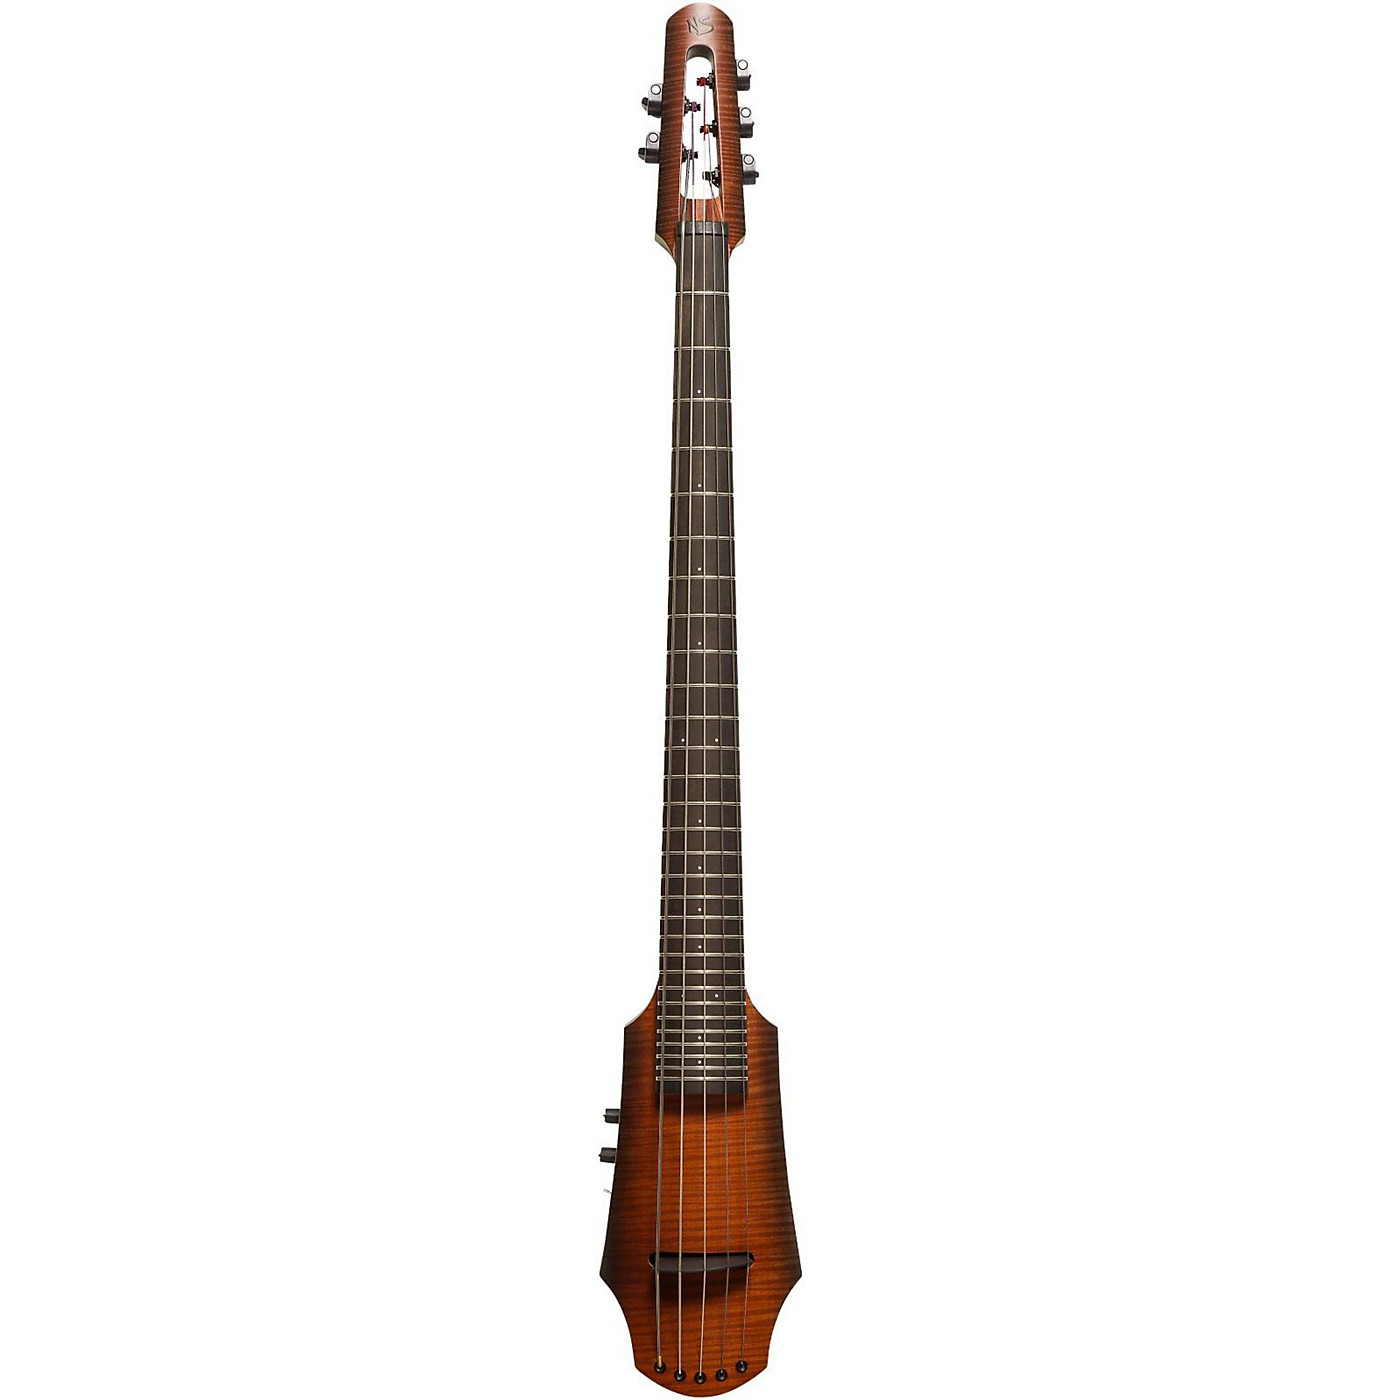 NS Design NXTa Active Series 5-String Fretted Electric Cello in Sunburst thumbnail